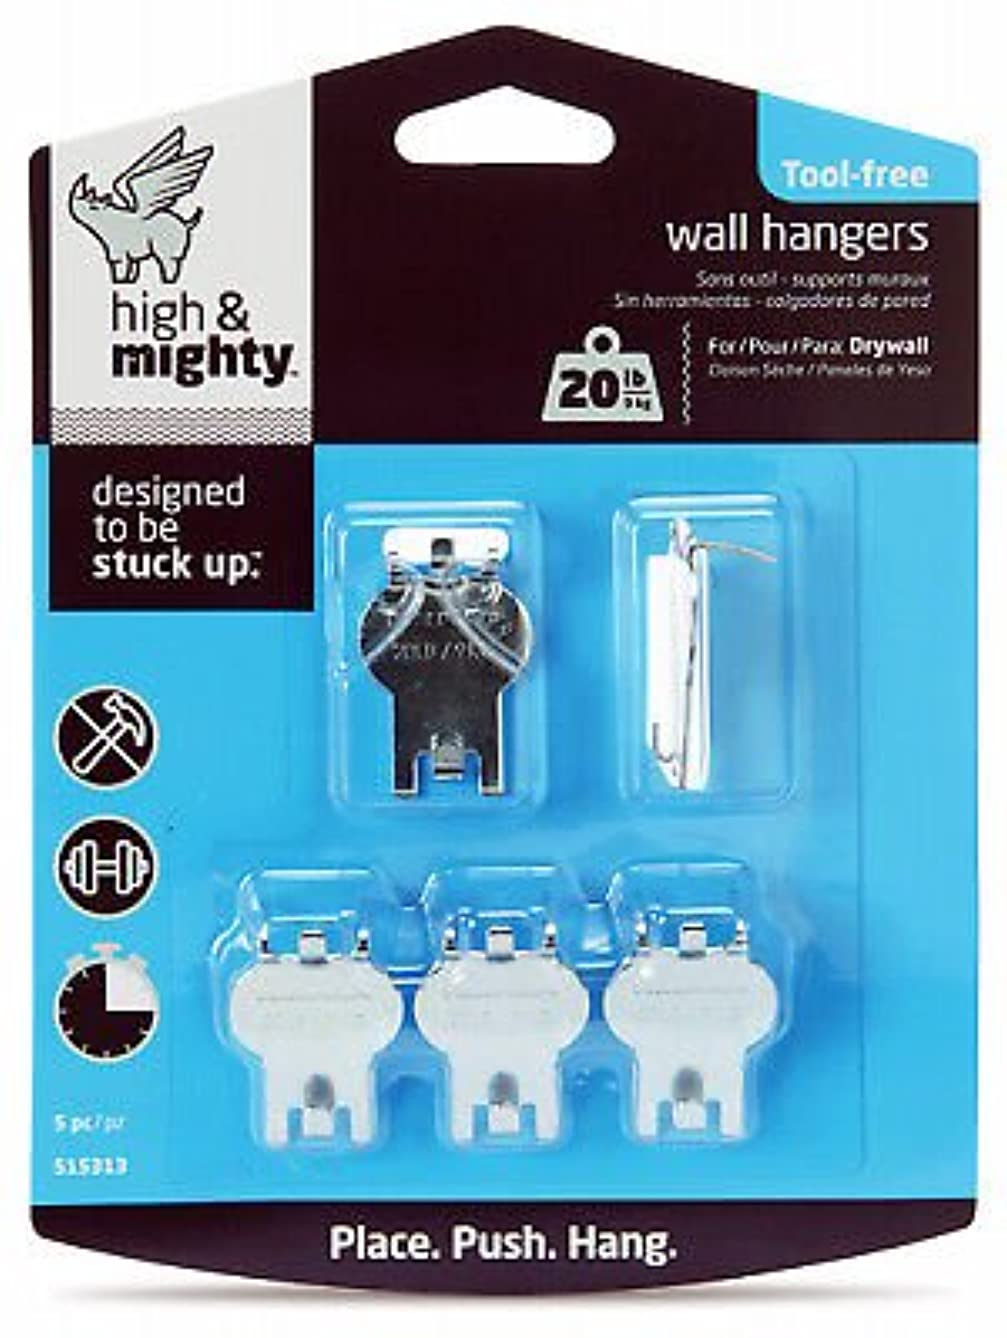 Hillman Fasteners 515313 5-Pc. Picture Hanging Kit, Holds 20-Lbs. - 2 Packs